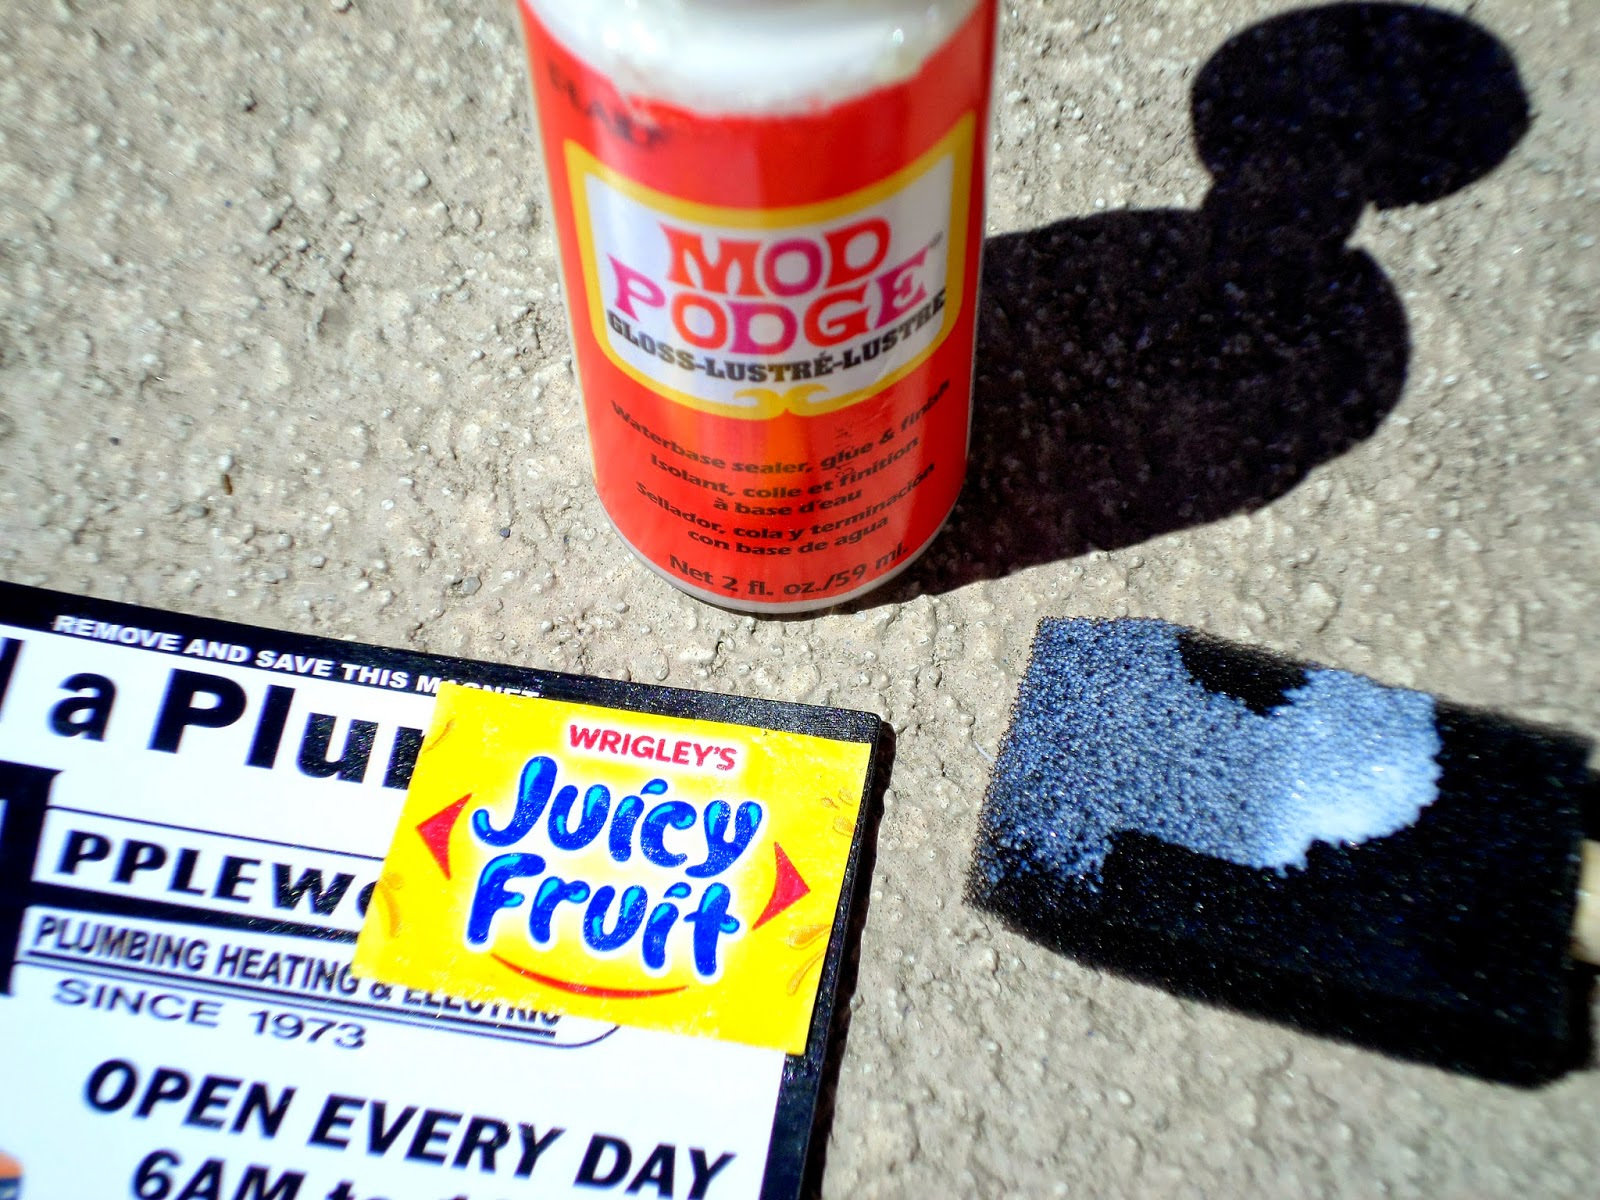 Summer Fun Juicy Fruit Gum Upcycled Wrapper Magnet Glue #JuicyFruitFunSide #shop